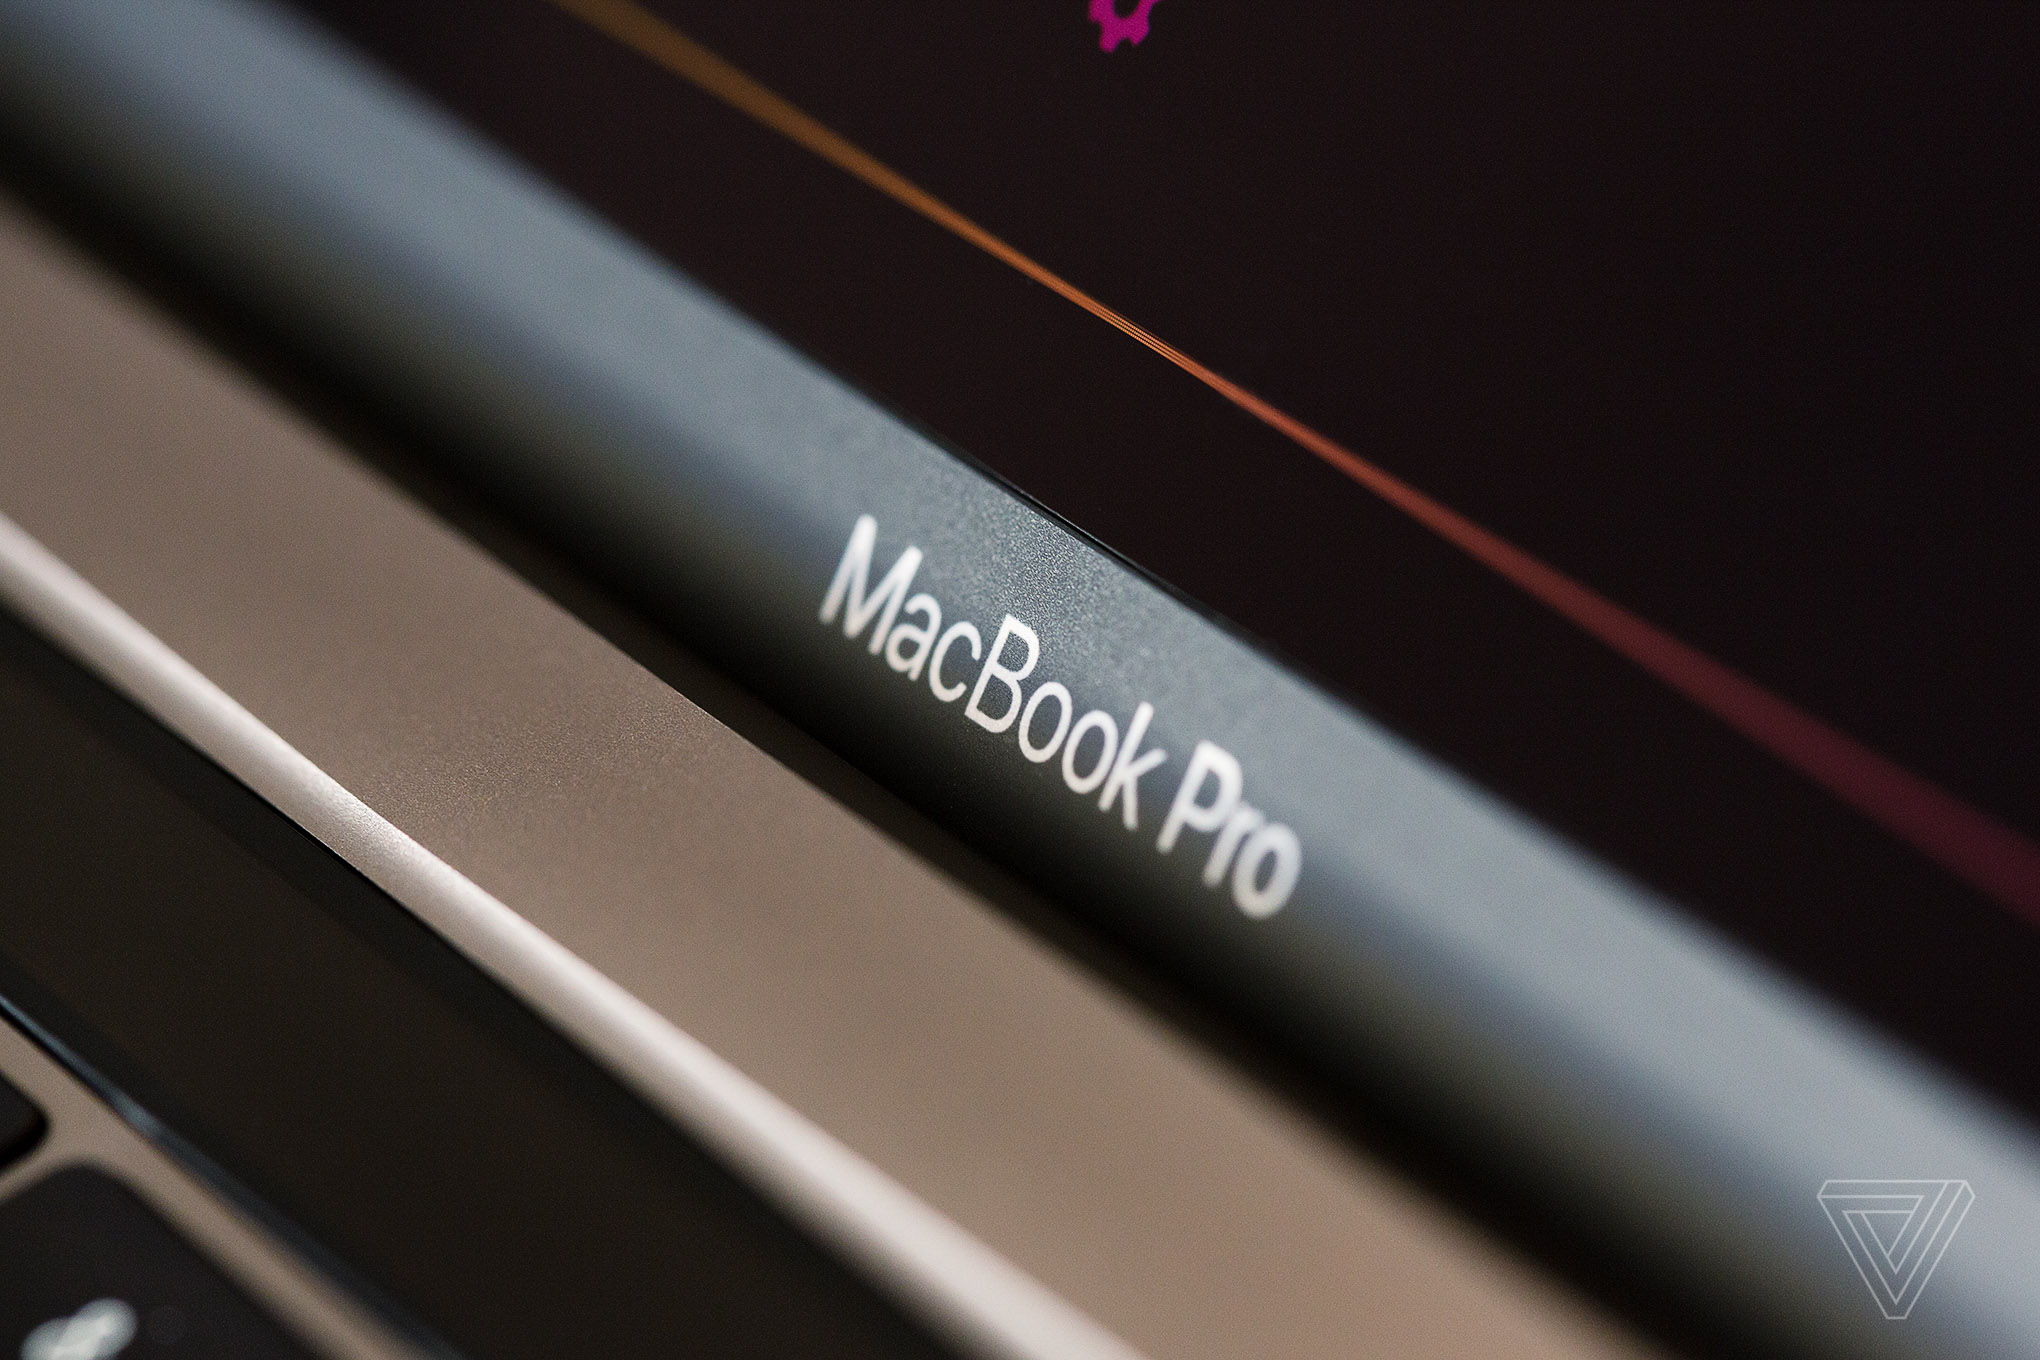 macbook pro review the verge